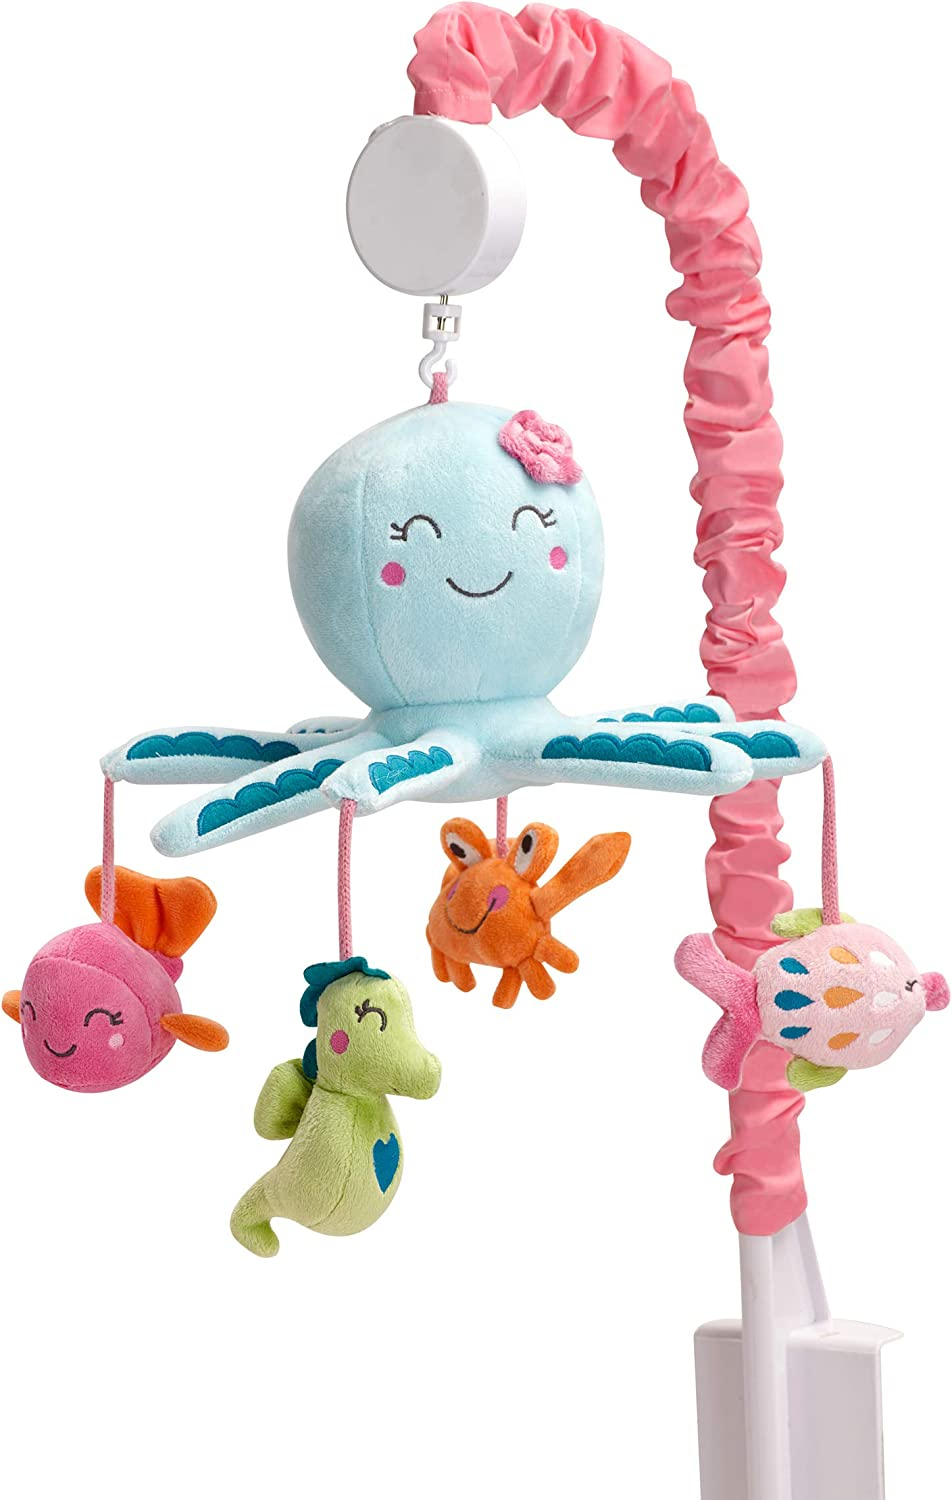 Carter's Sea Collection Musical Mobile, Pink bluee Turquoise